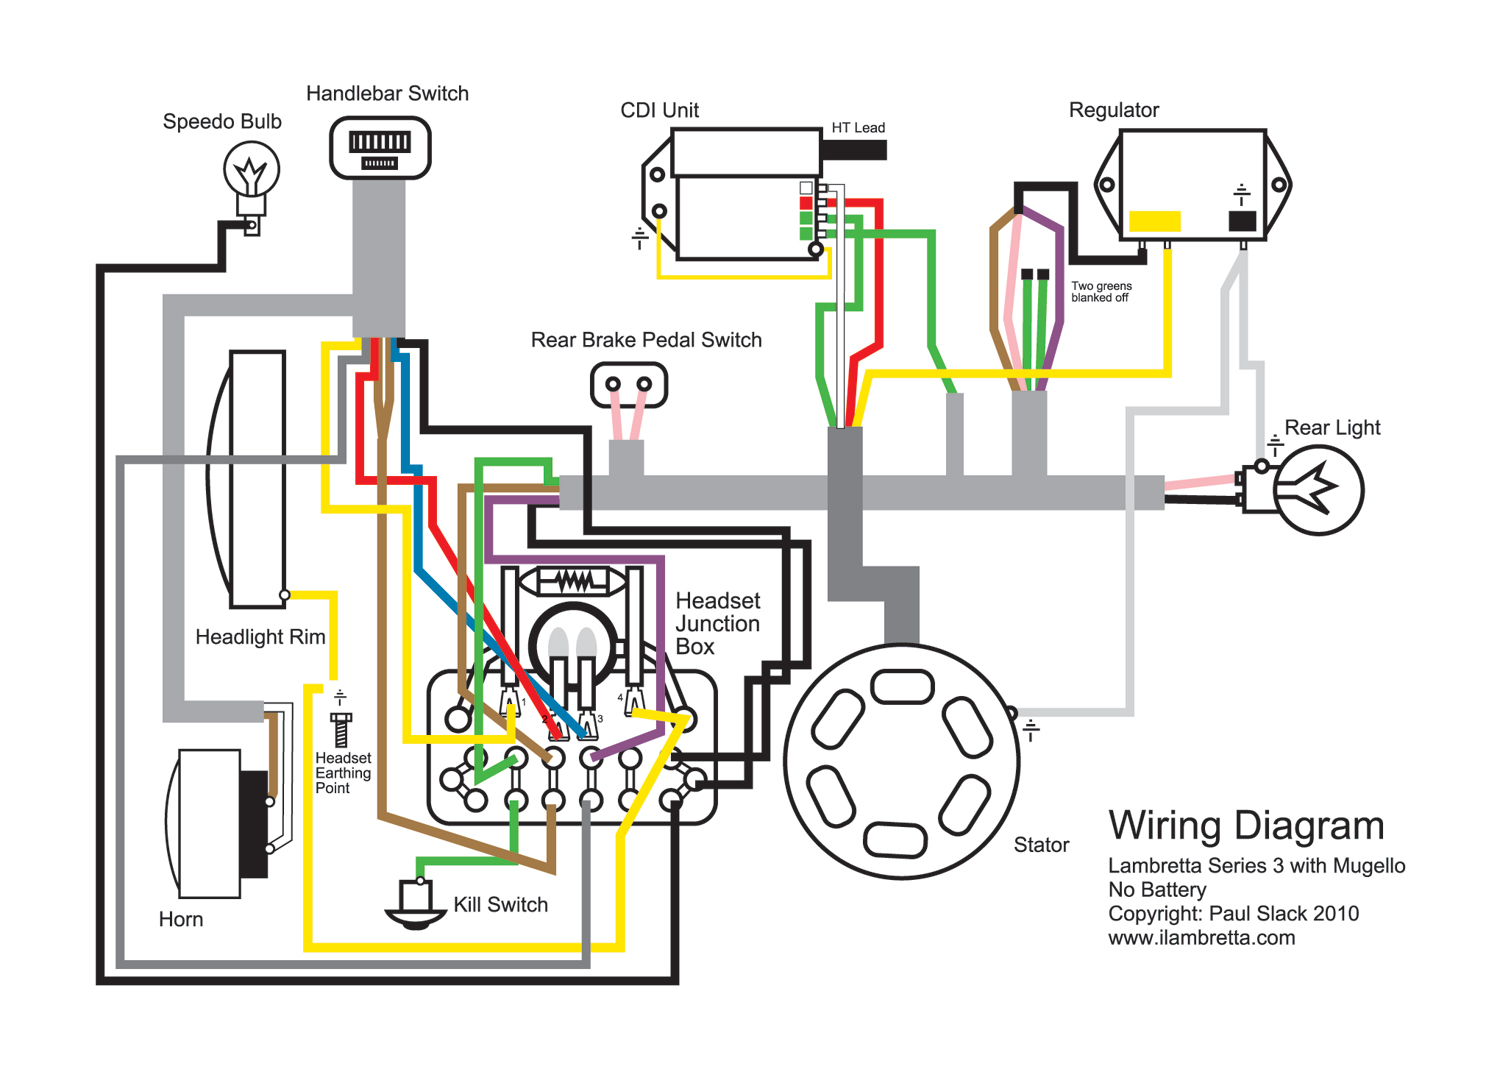 12 volt ac wiring wiring diagrams scematic painless wiring fuse panel 12v ac wiring [ 1500 x 1072 Pixel ]